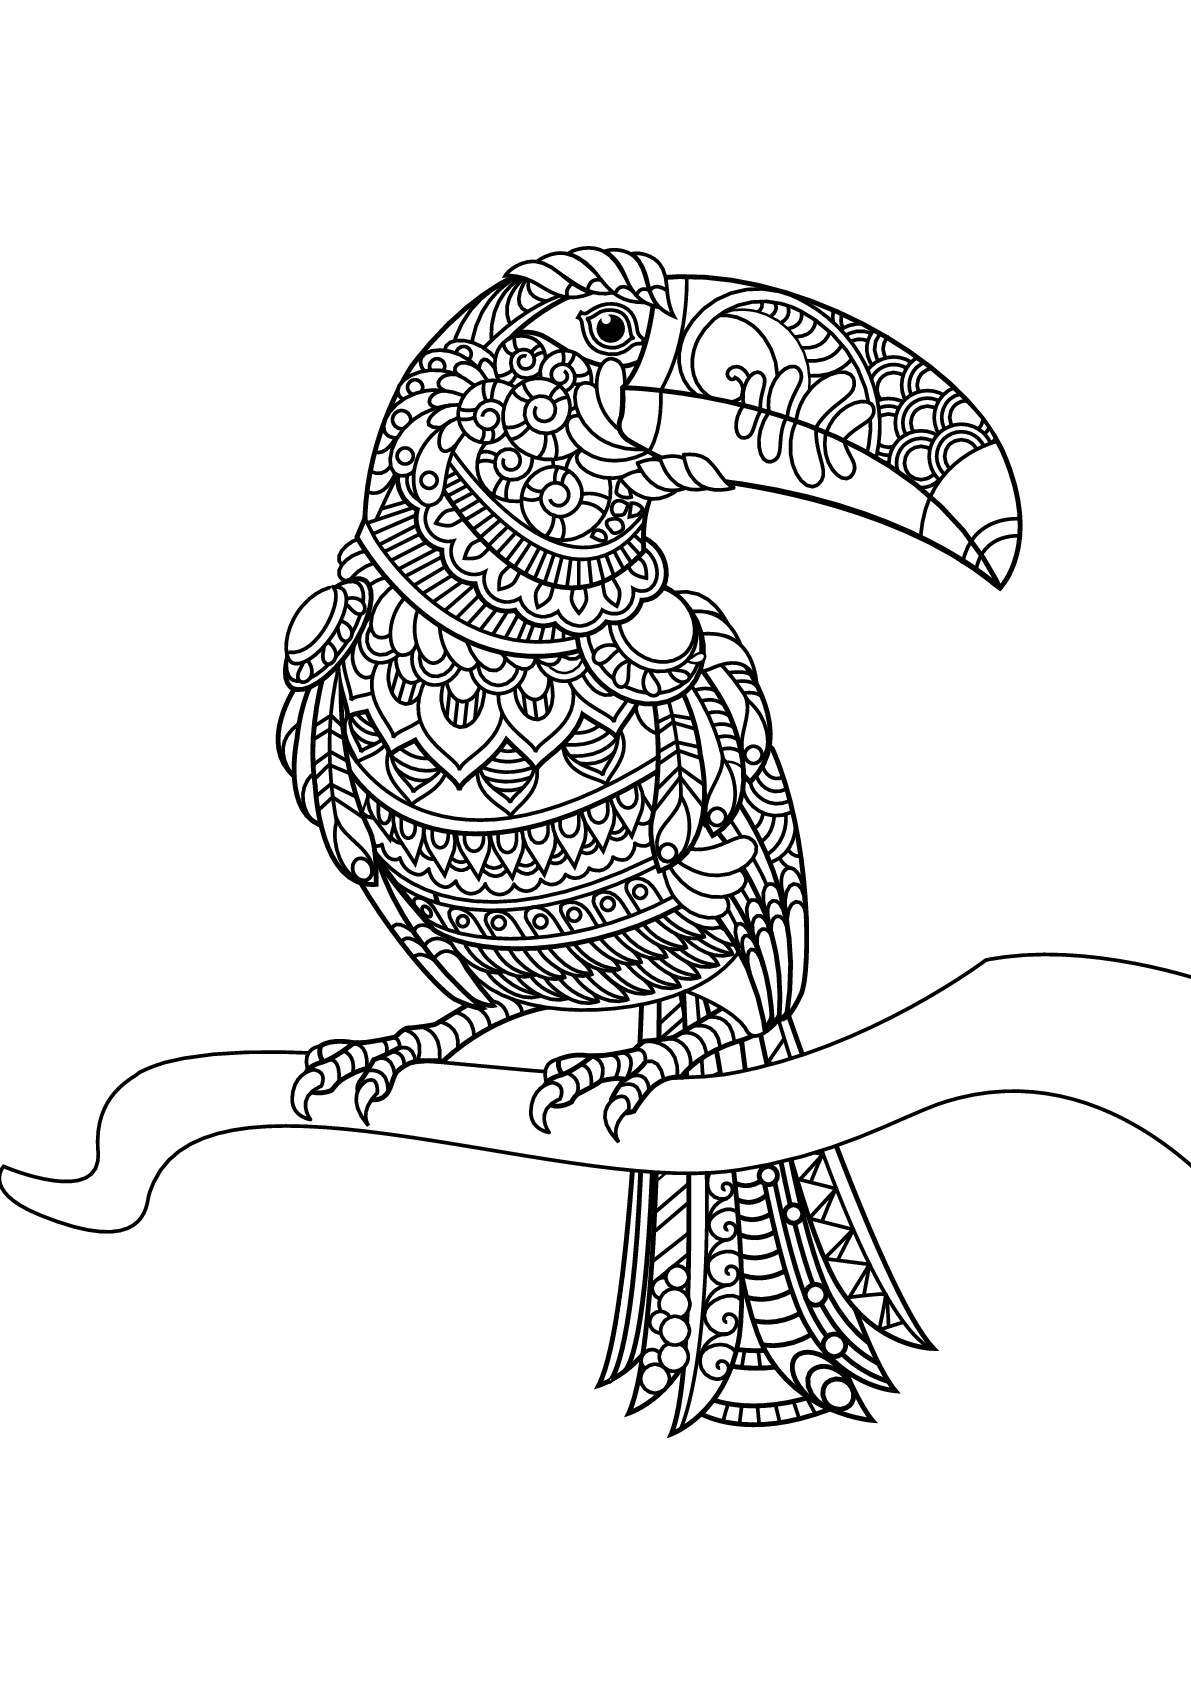 Free book toucan - Birds Adult Coloring Pages | free printable coloring pages for adults animals